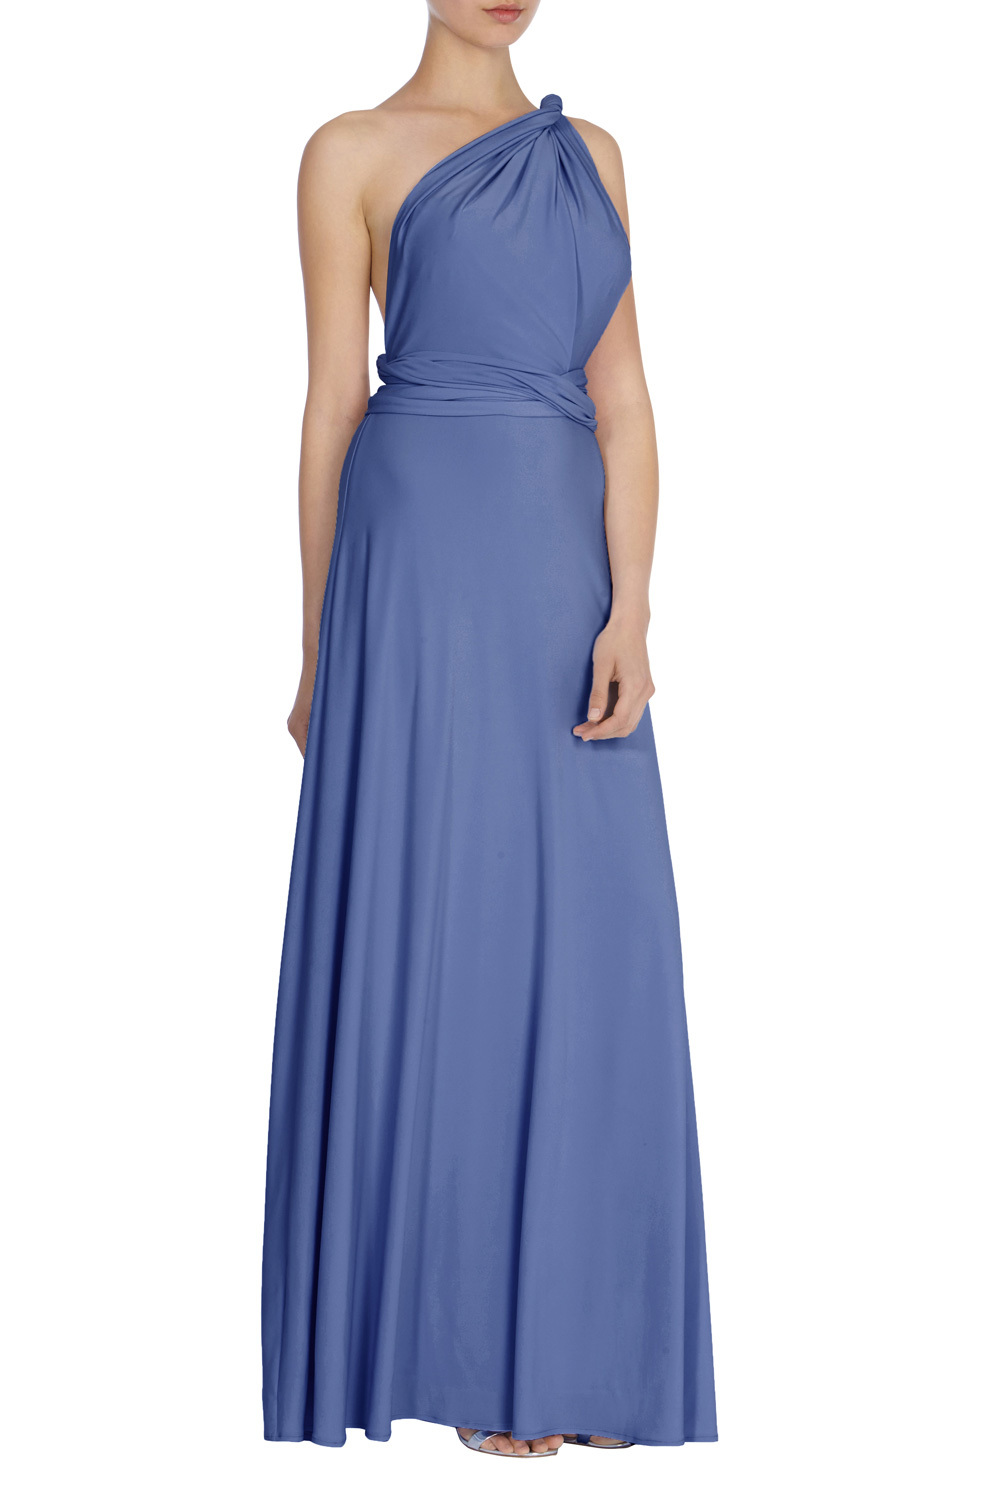 Corwin Multi Tie Maxi Sl - style: ballgown; fit: fitted at waist; pattern: plain; sleeve style: sleeveless; neckline: asymmetric; waist detail: flattering waist detail; predominant colour: denim; length: floor length; fibres: polyester/polyamide - 100%; occasions: occasion; sleeve length: sleeveless; texture group: crepes; pattern type: fabric; season: s/s 2016; wardrobe: event